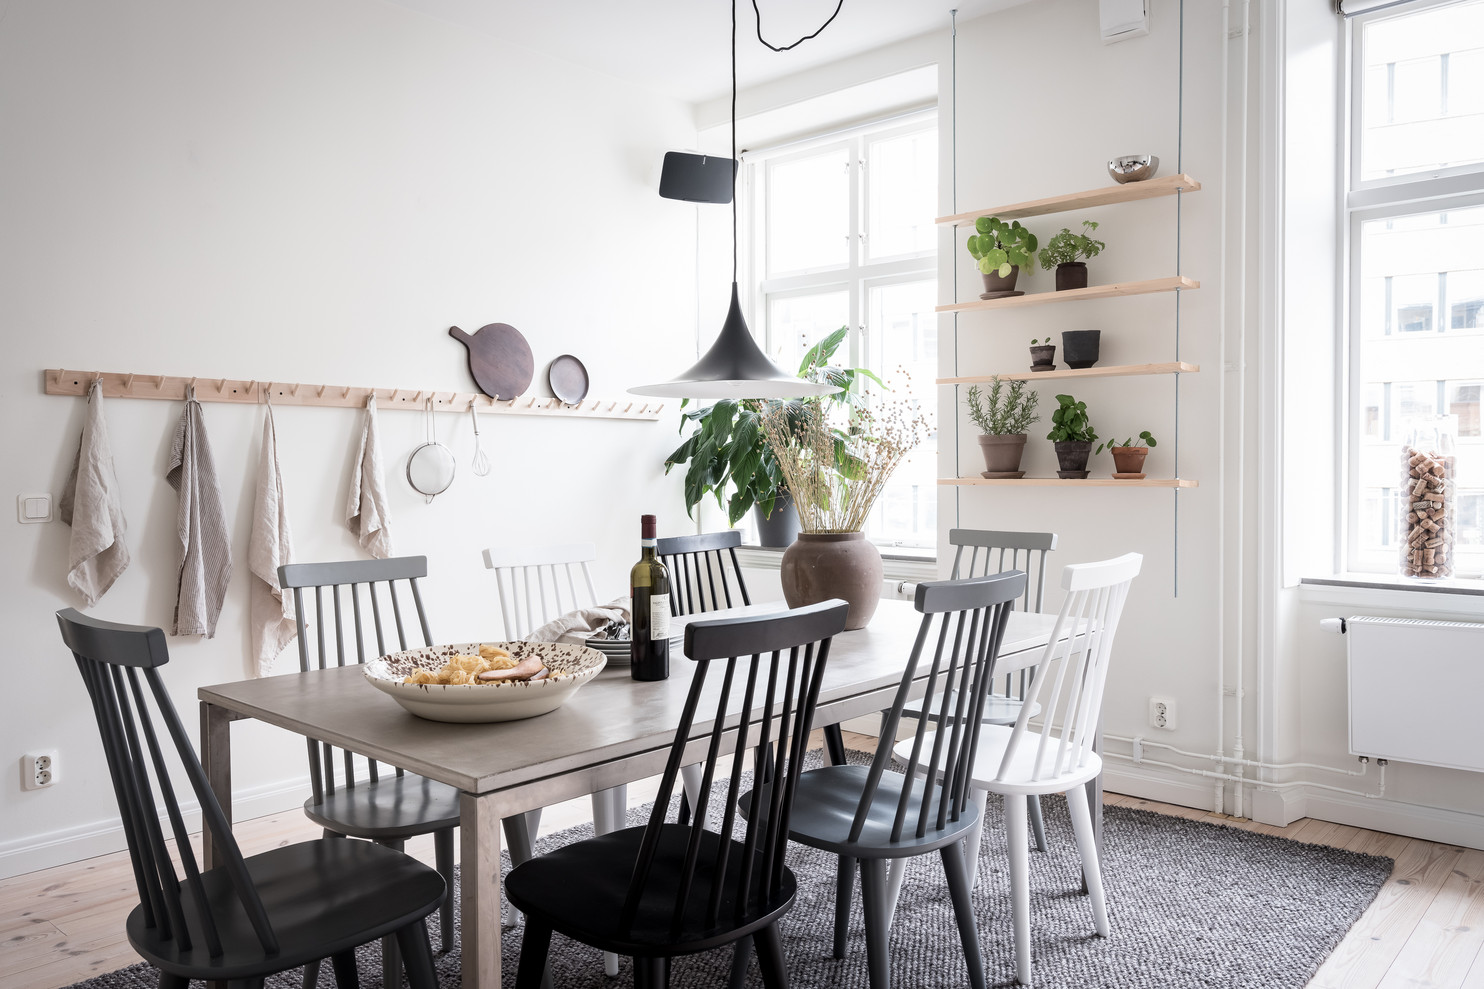 15 Heavenly Scandinavian Dining Room Designs Any Home Can Make Use Of